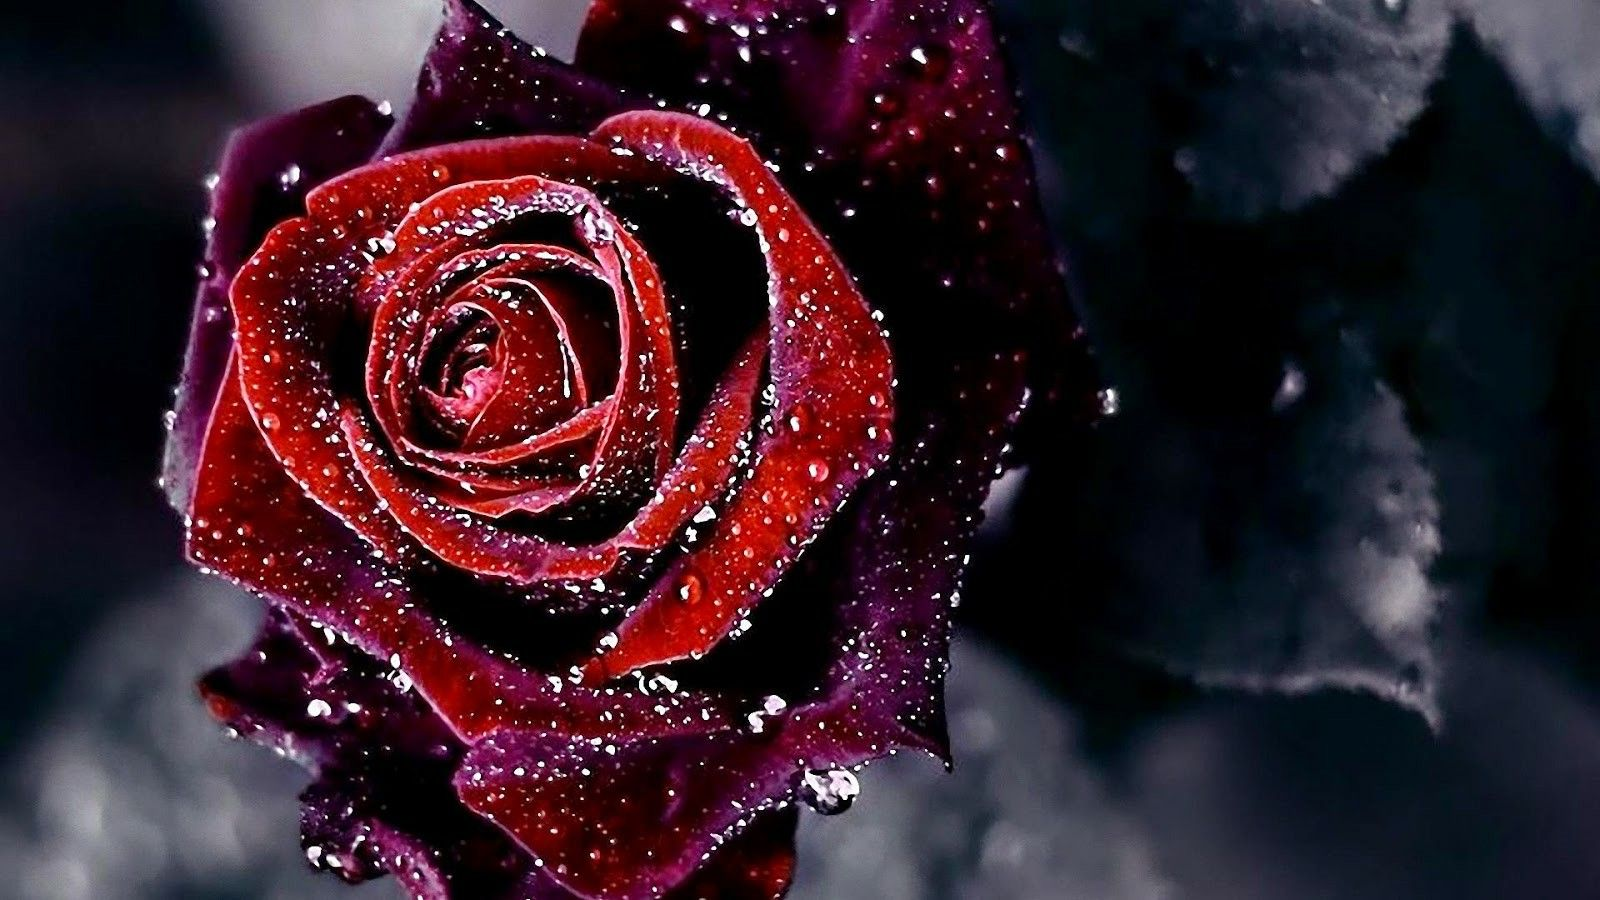 Image Result For Free Purple And Red Rose Background Rose Flower Wallpaper Red Flower Wallpaper Red Rose Flower